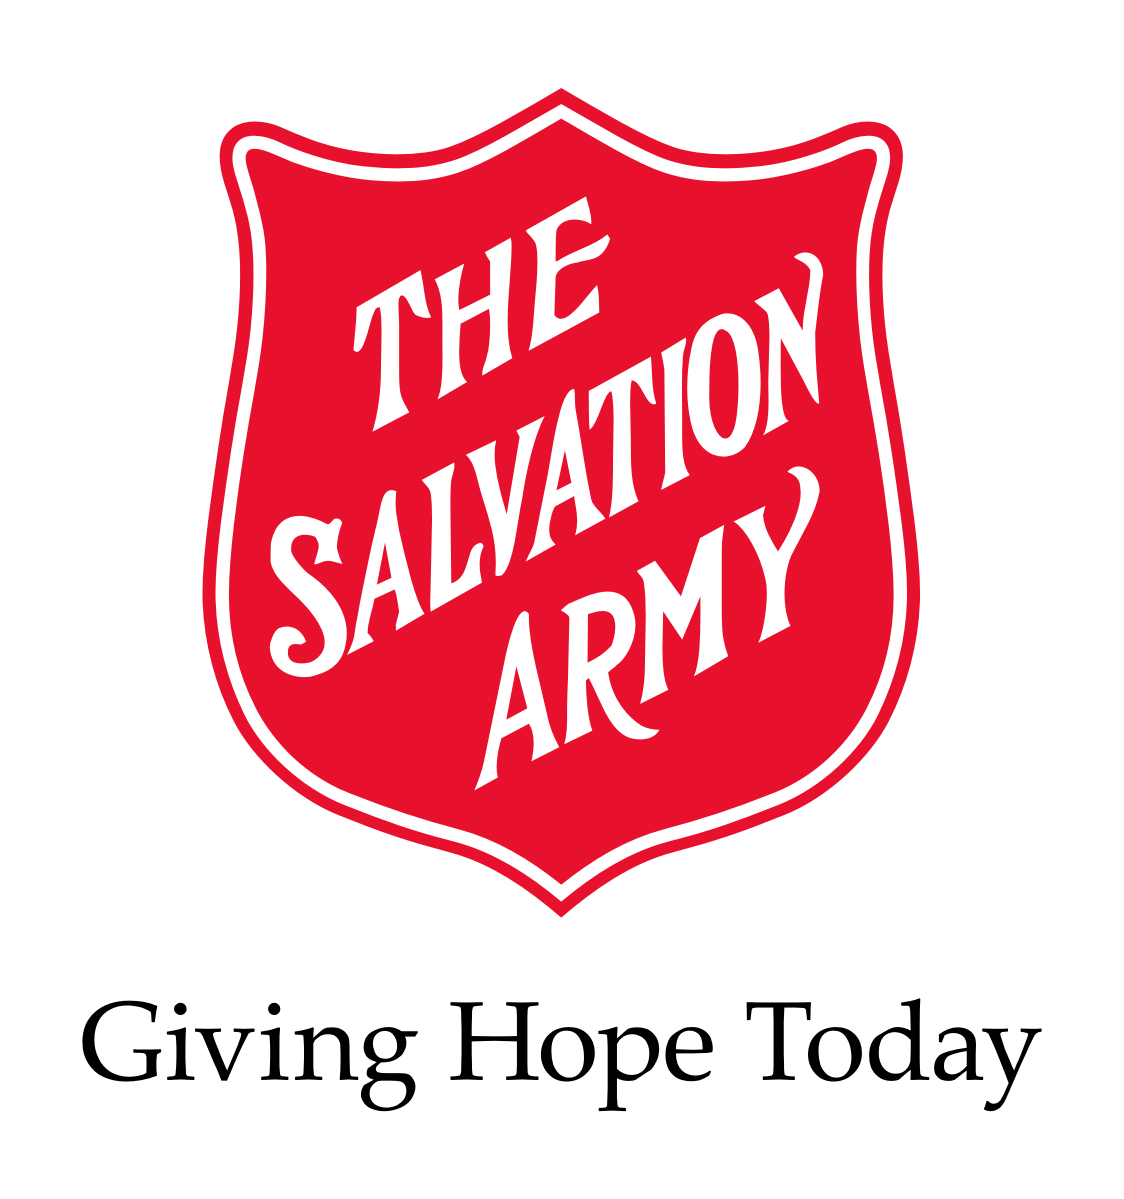 Salvation Army Shield Clip Art http://salvationarmygraysharborprograms.blogspot.com/